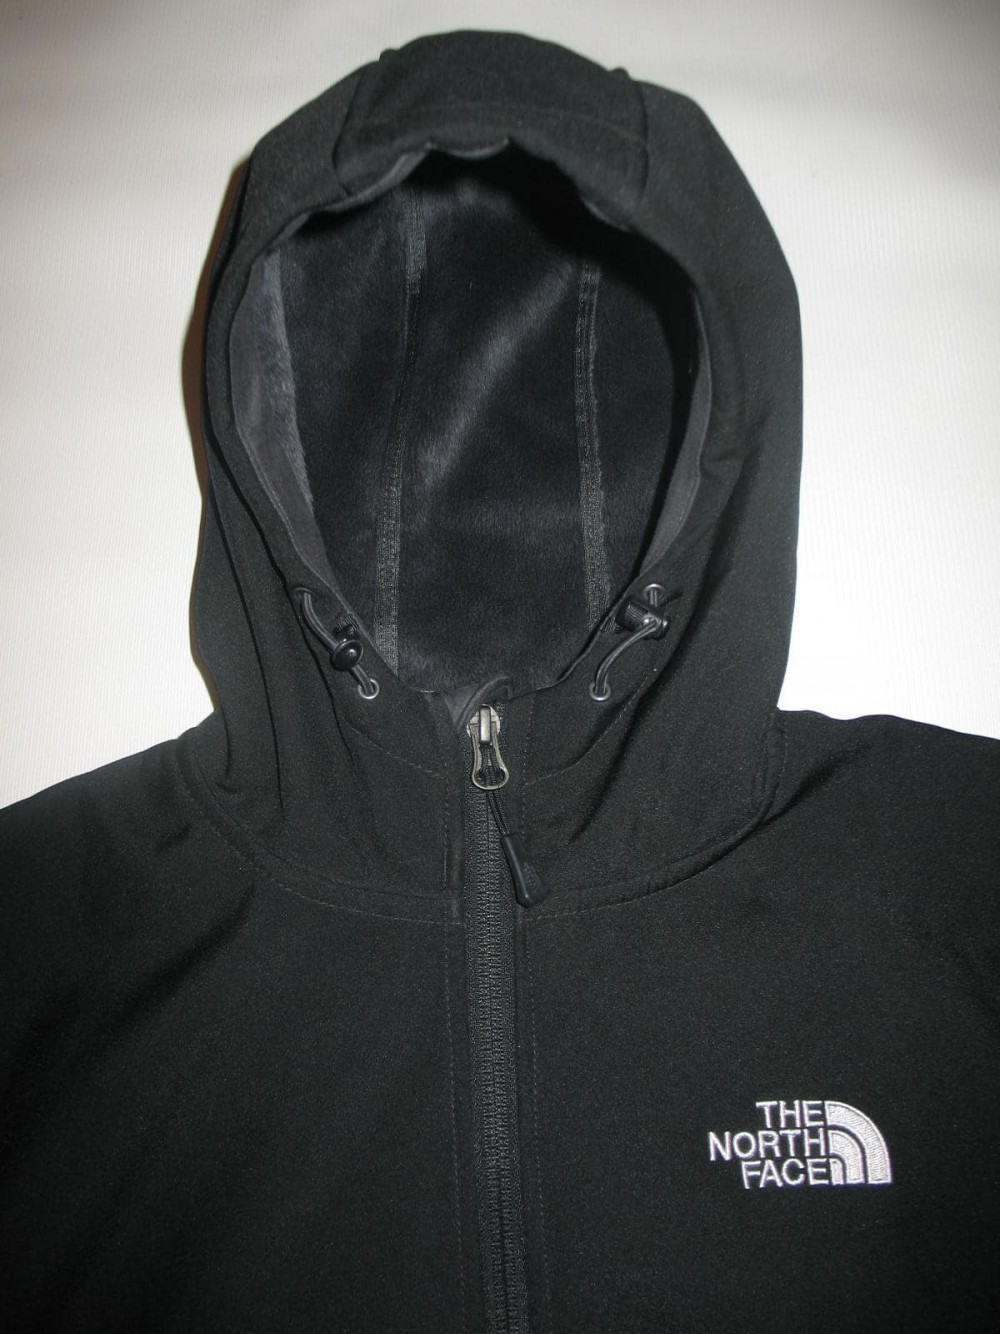 Куртка THE NORTH FACE softshell jacket lady (размер M) - 3